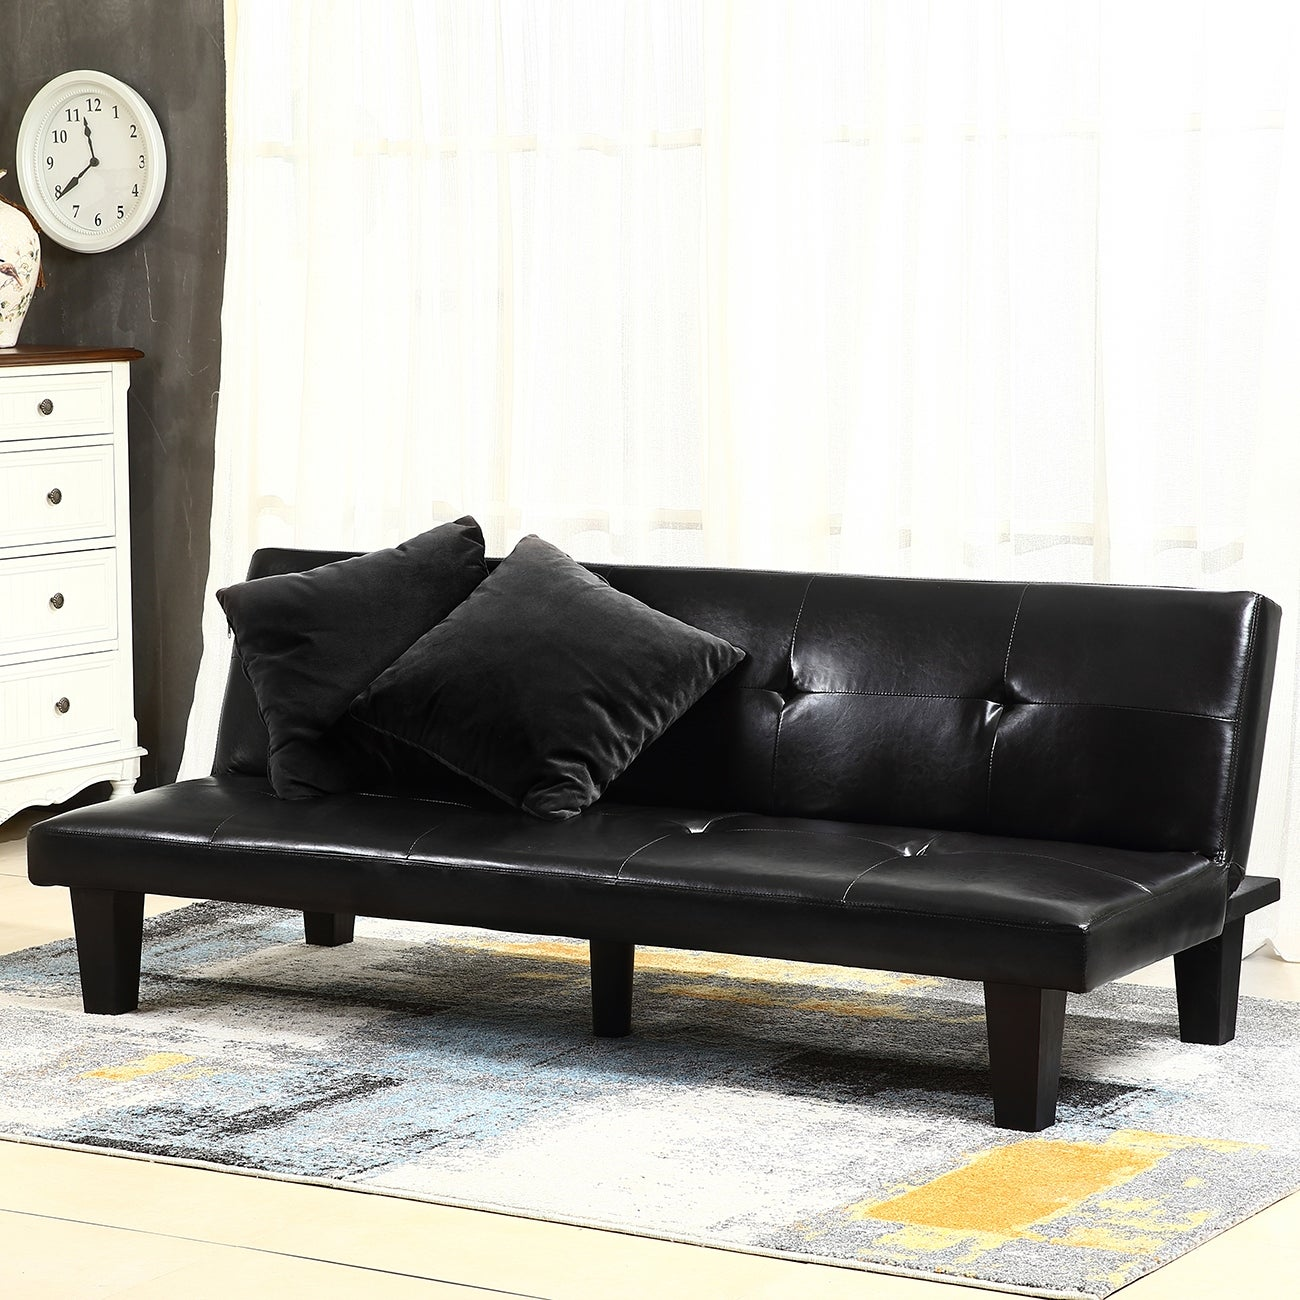 Belleze Convertible Futon Folding Sofa Bed Couch Sleep Adjule Recliner Lounger Vanilla Black And Brown Free Shipping Today Com